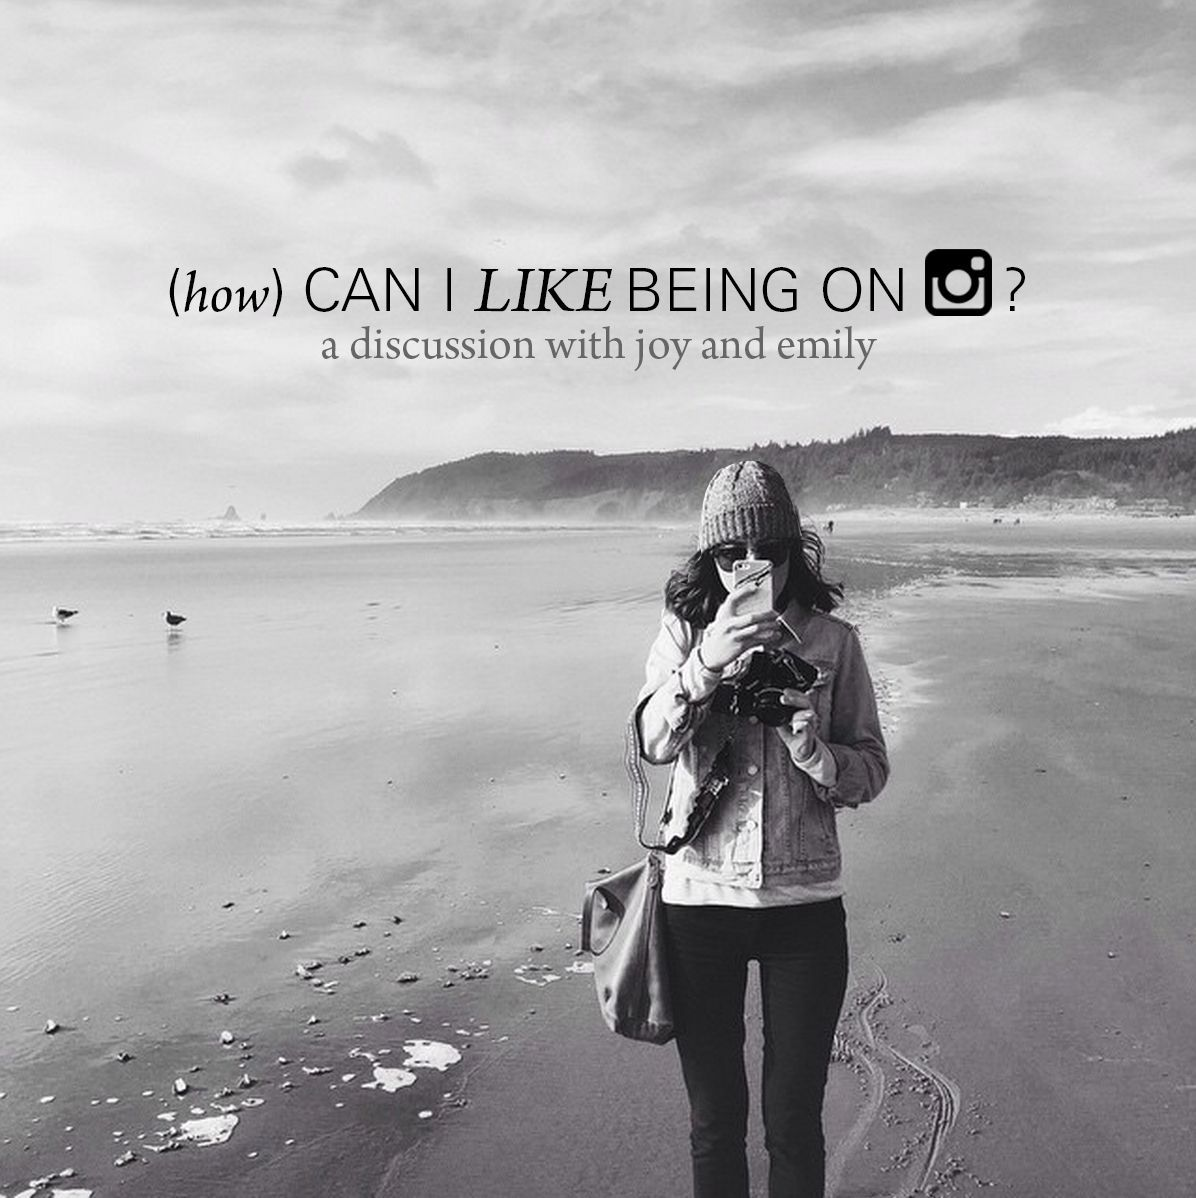 (how) Can I like being on Instagram?